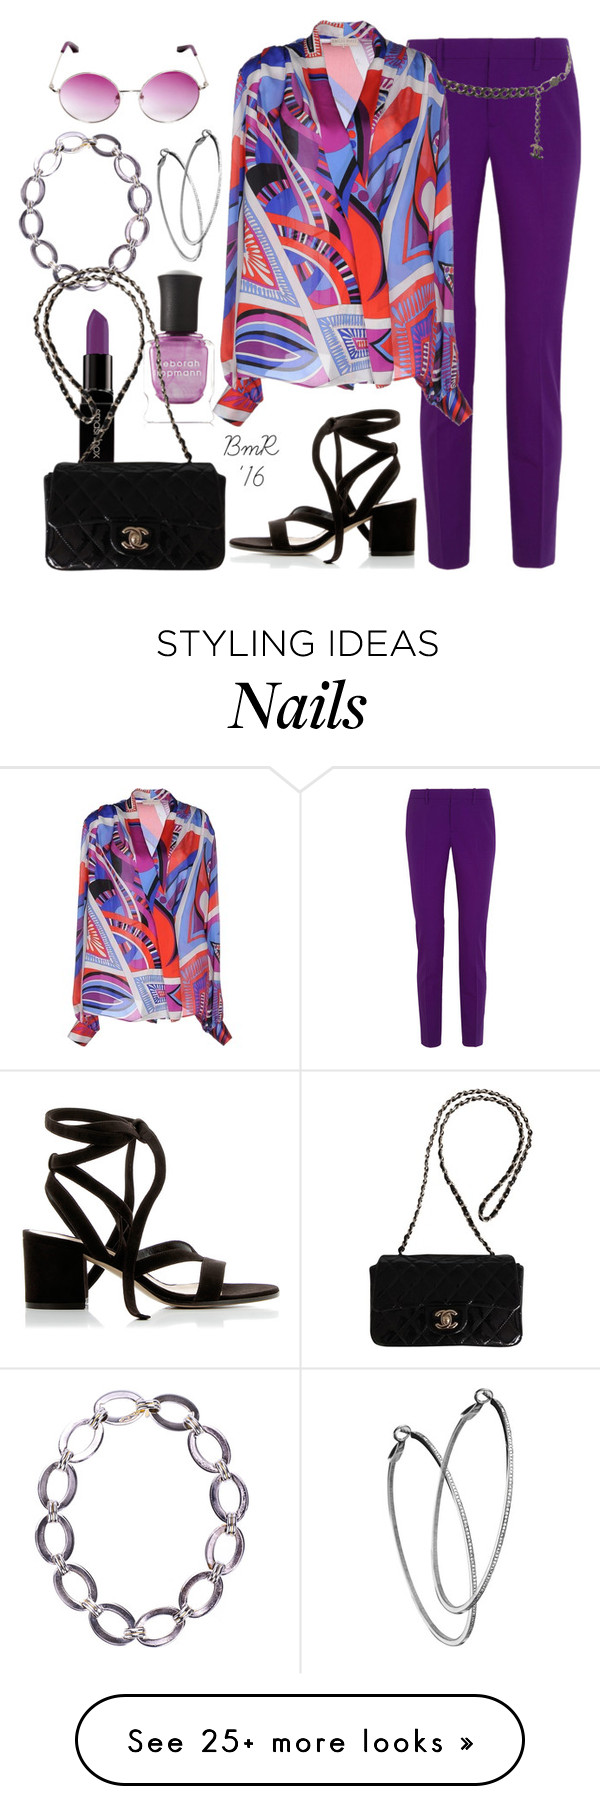 """""""Wrapped With Love"""" by barbmama on Polyvore featuring Chanel, Gucci, Emilio Pucci, Gianvito Rossi, Deborah Lippmann, Smashbox, Linda Farrow and Mystic Light"""